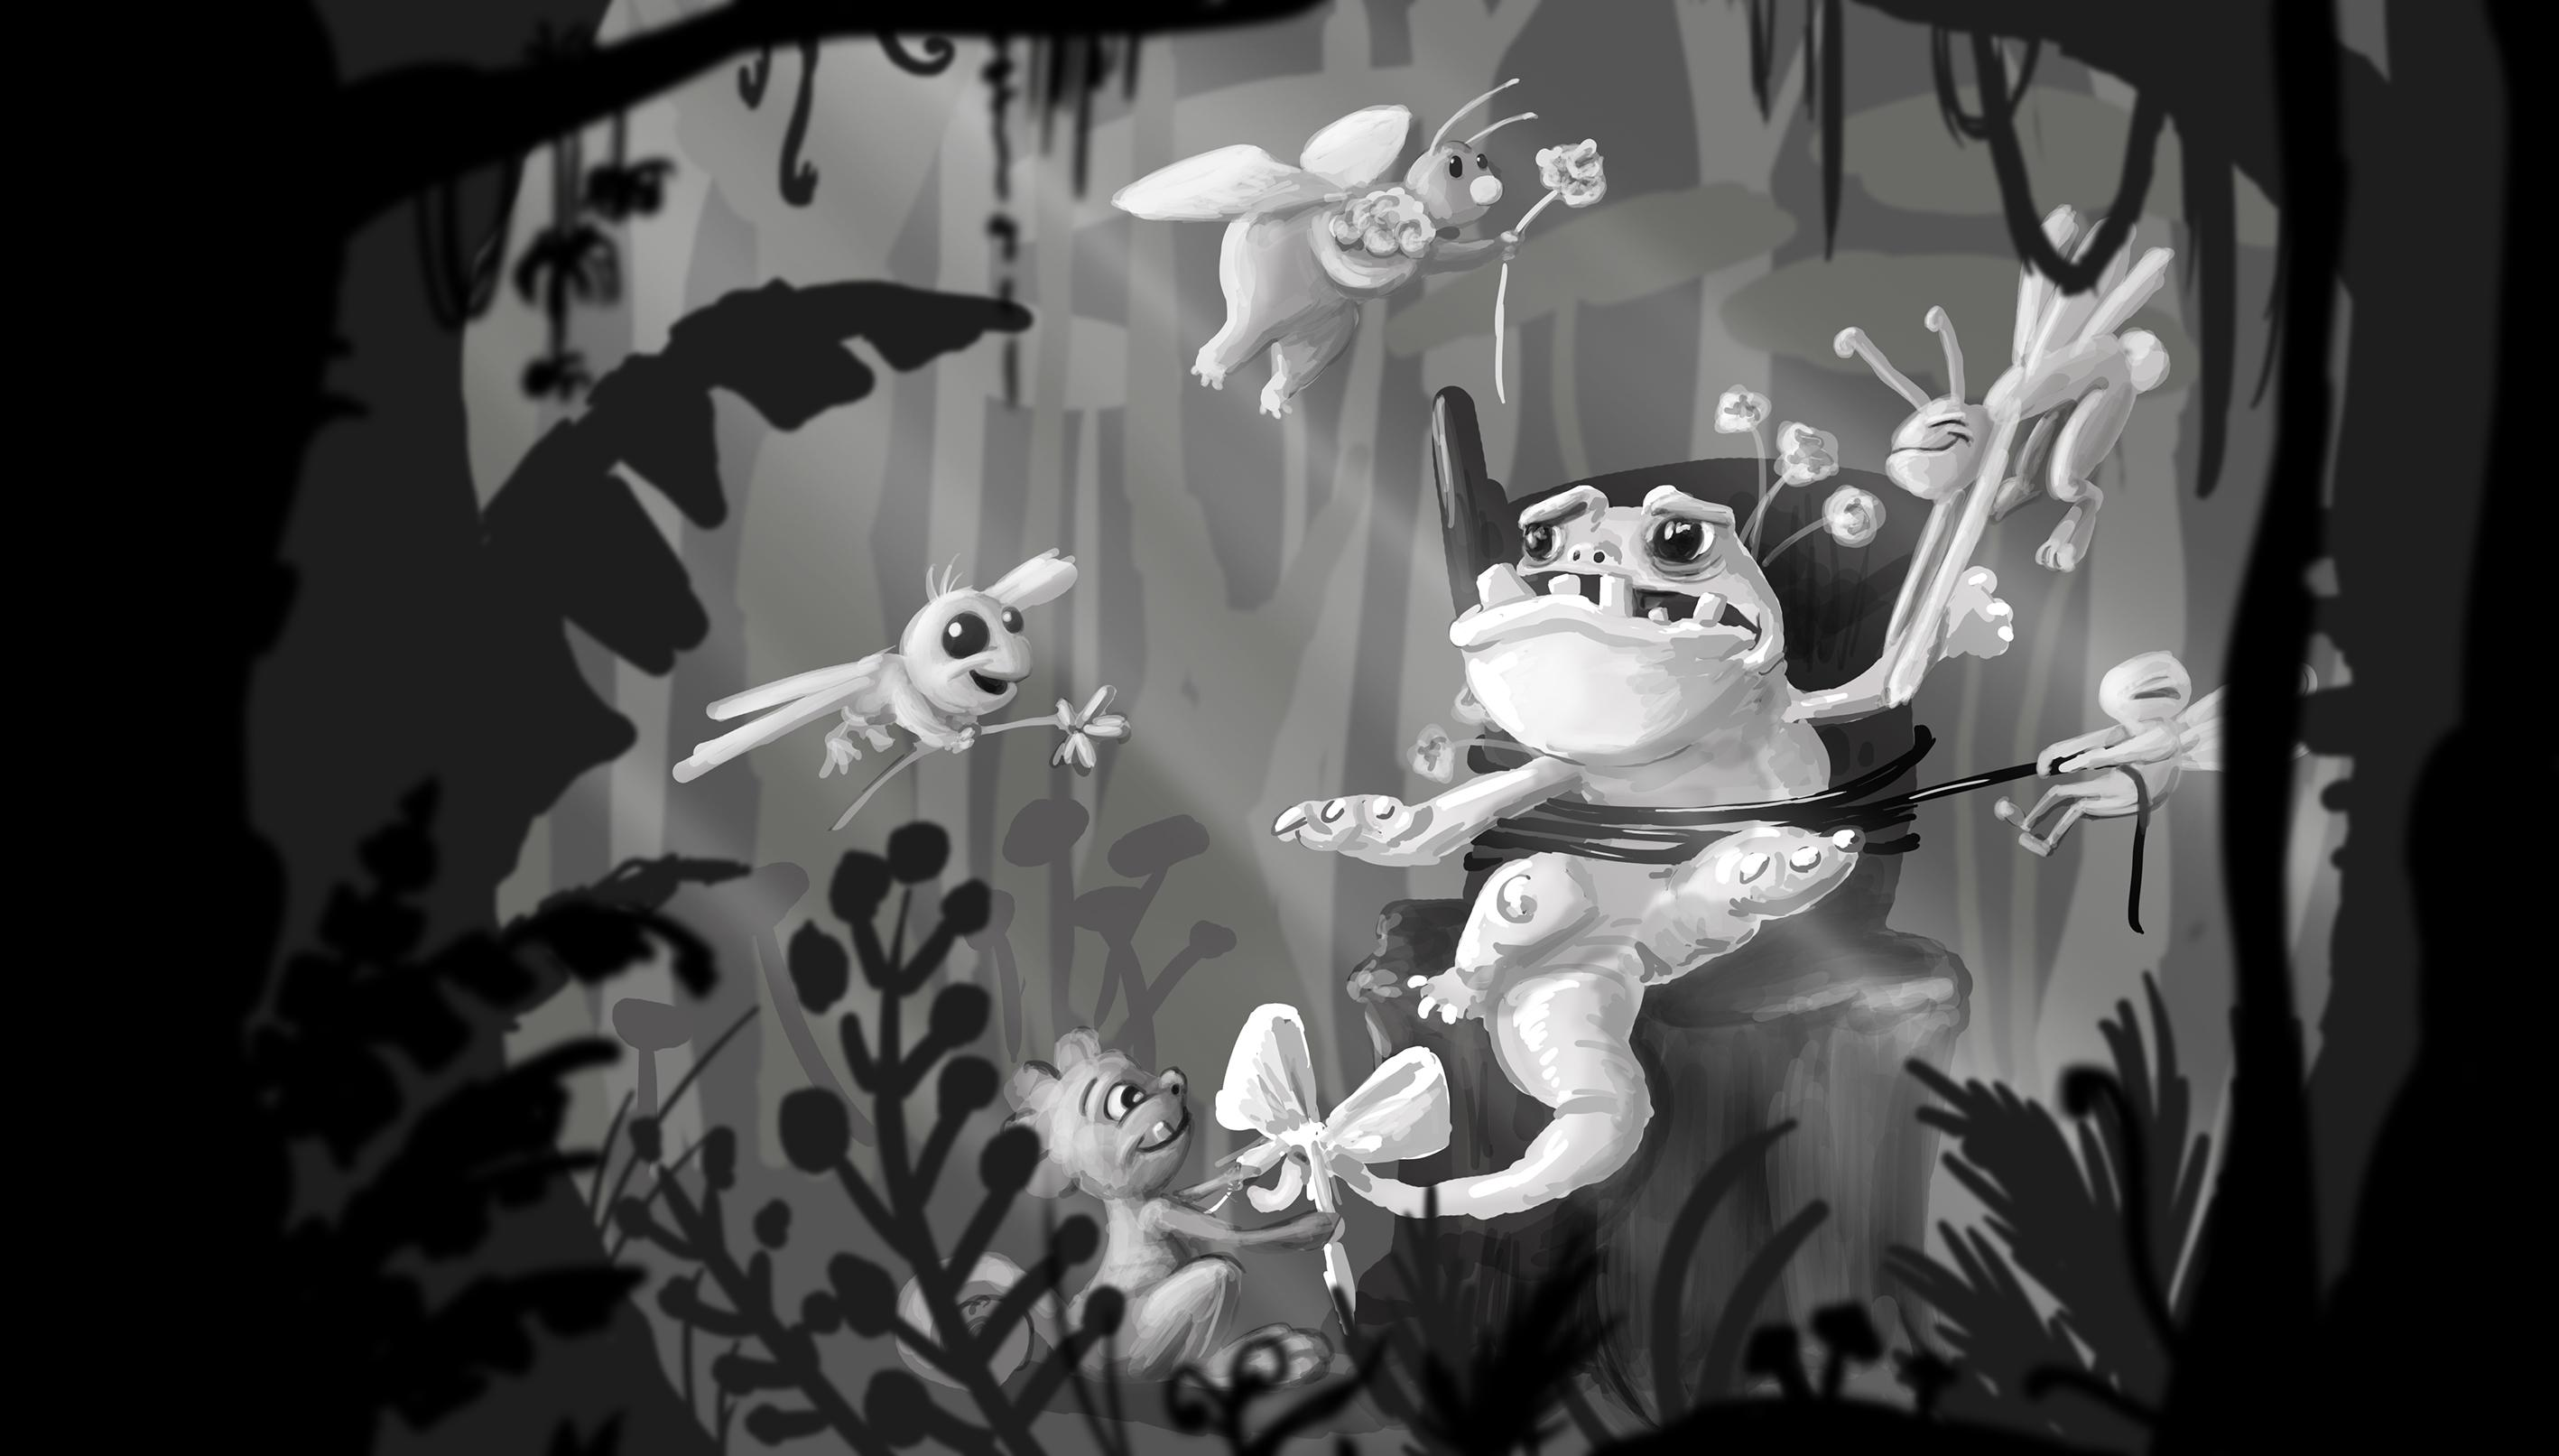 Cheeky Critters - image 1 - student project